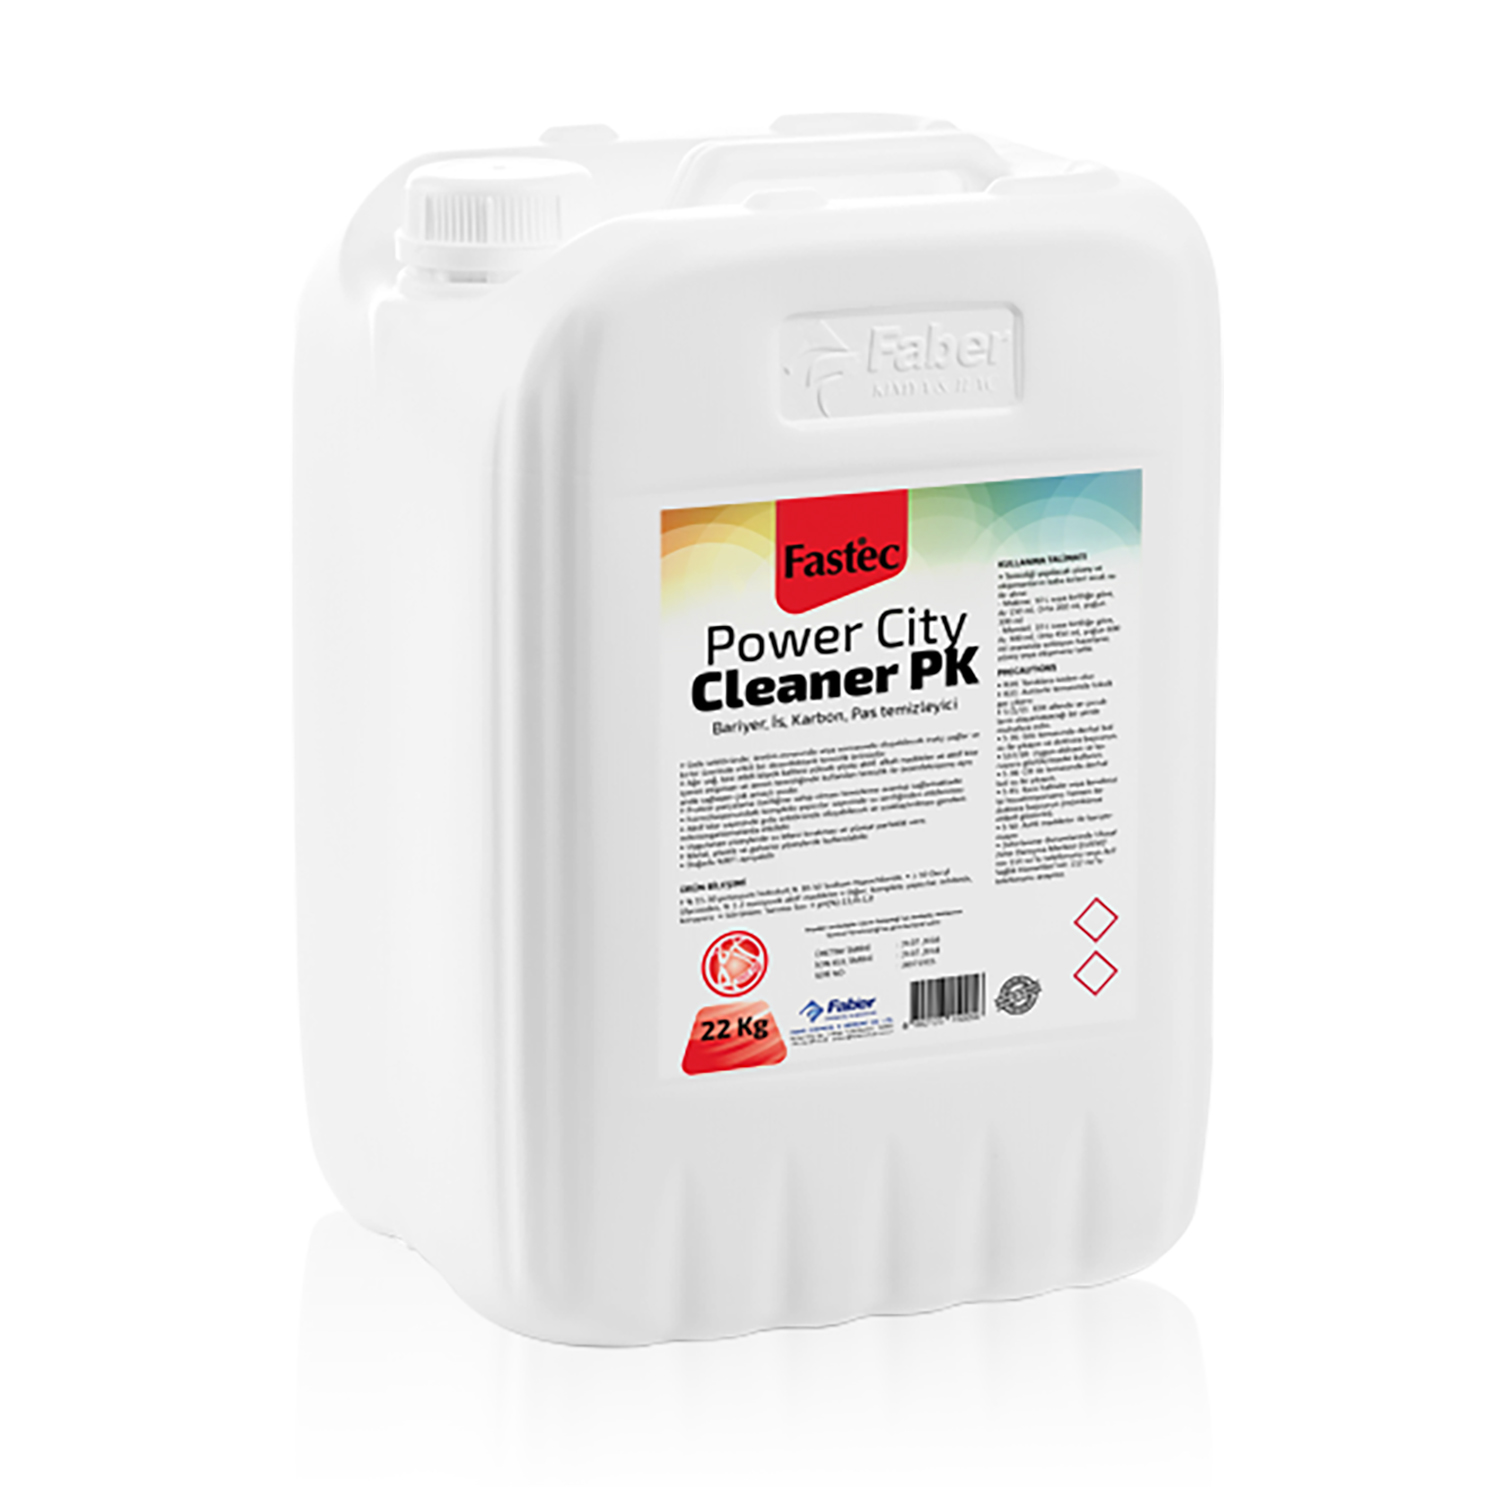 Fastec Power City Cleaner PK